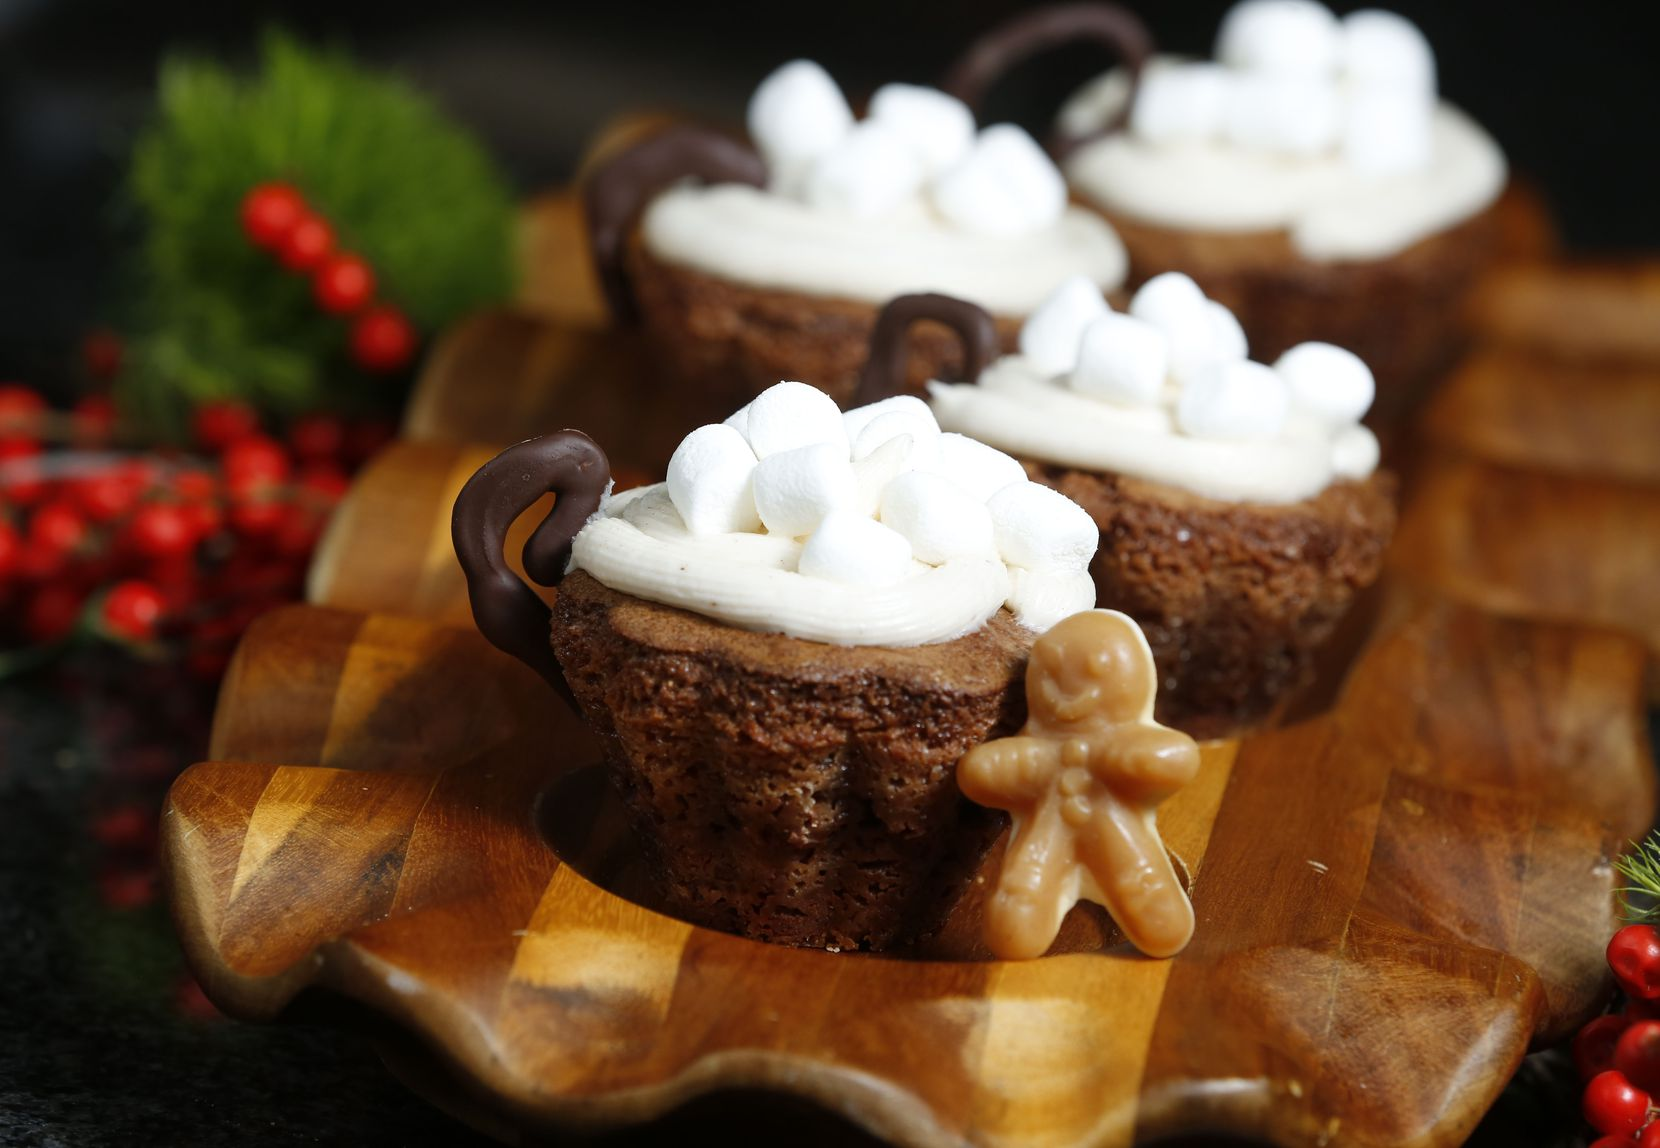 Gingerbread Hot Cocoa Cups with Spiced Marshmallow Creme by Ava Bell Reynolds won first place in the kid's choice awards during The Dallas Morning News cookie contest at Central Market in Dallas on Nov. 14, 2018.